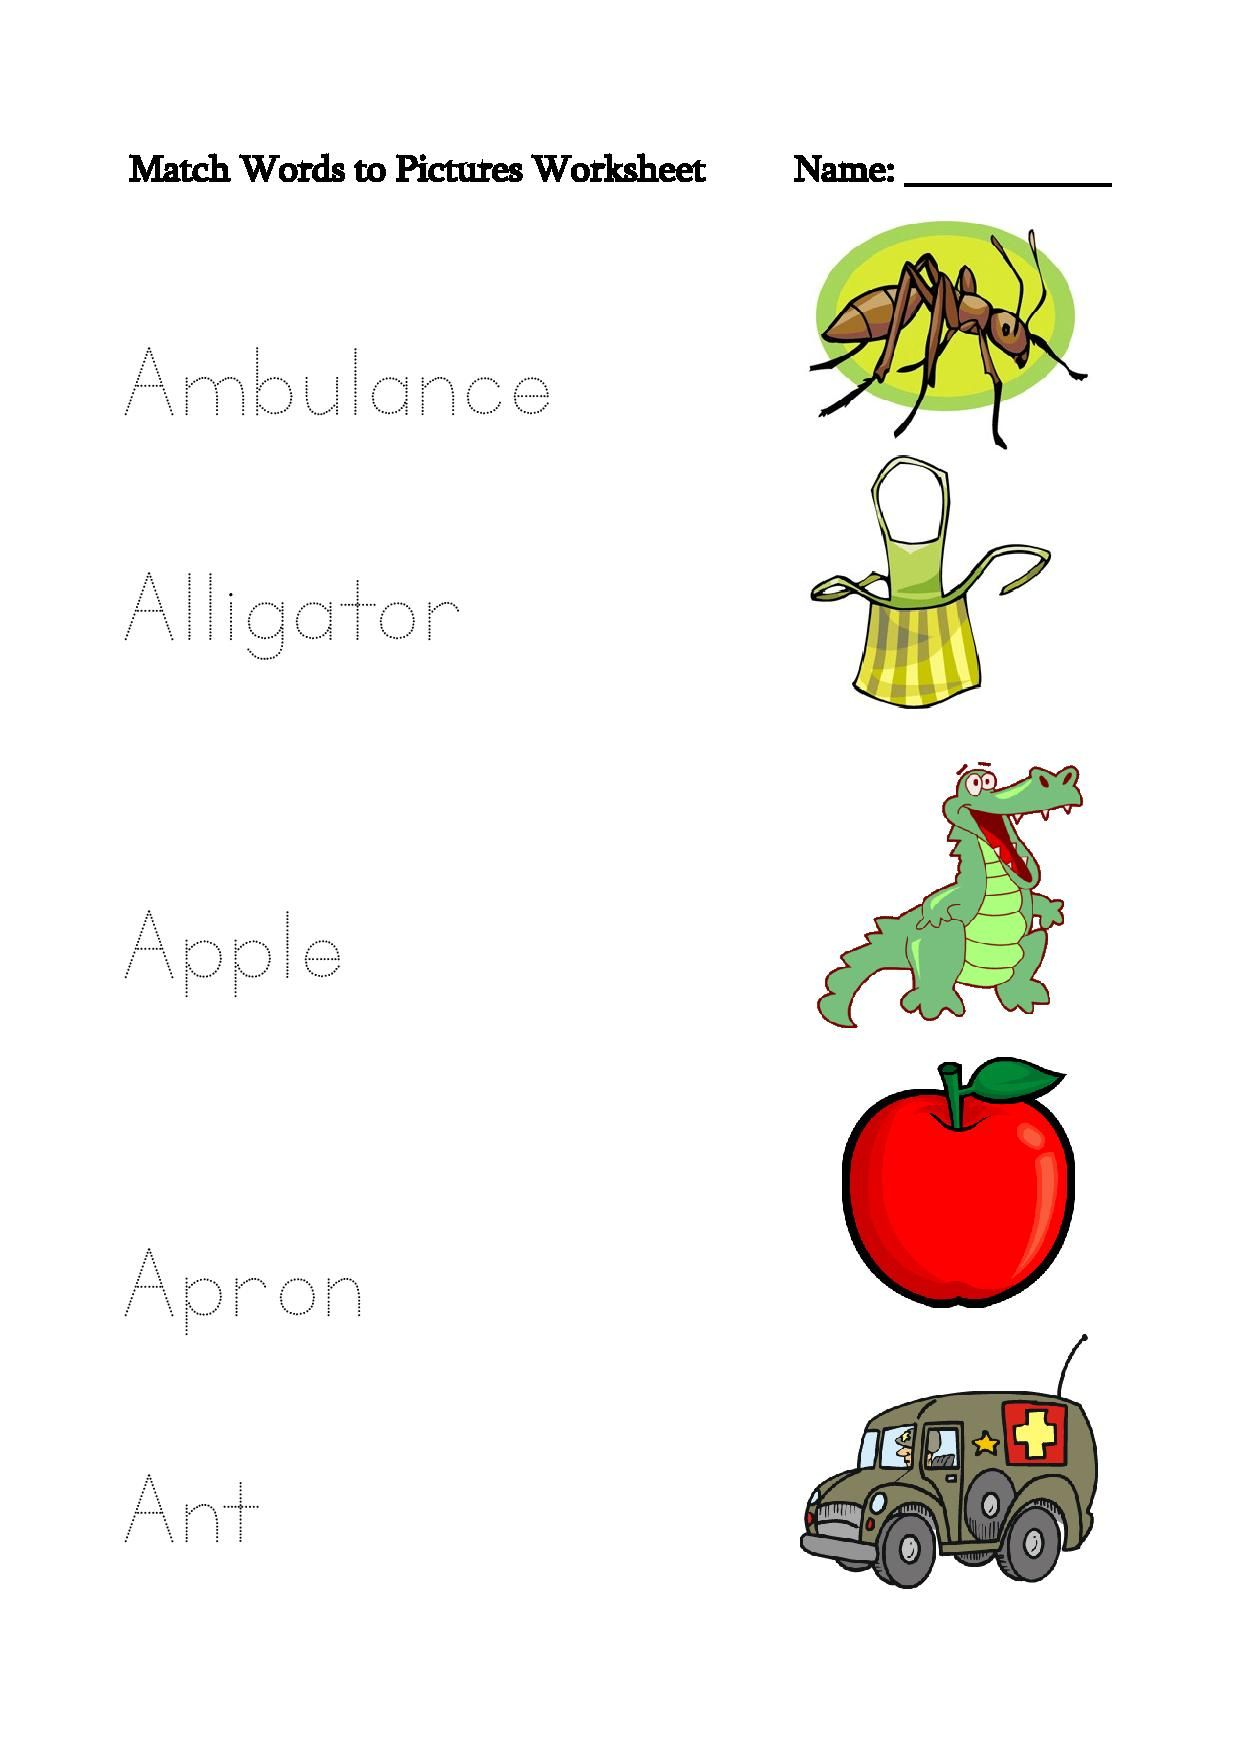 Letter A Words To Match Picture Tracing Worksheets Workingsheet Contains Images Of Apple